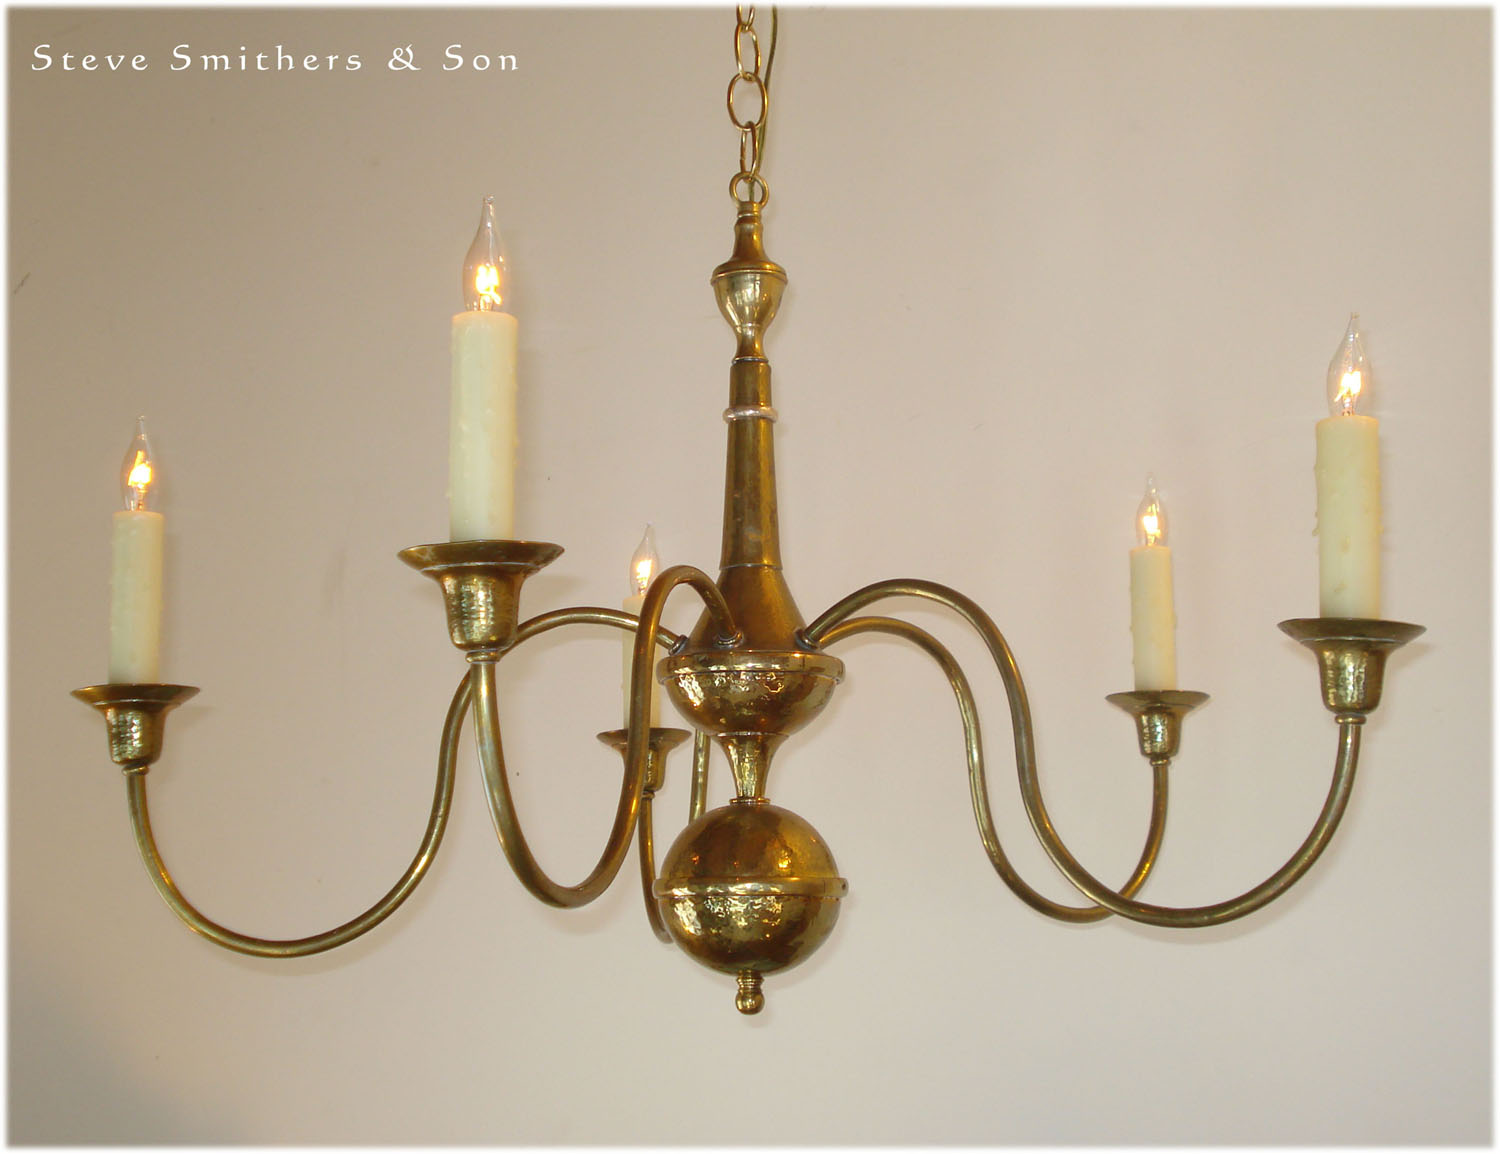 Handmade brass sconces chandeliers lamps lanterns aloadofball Choice Image